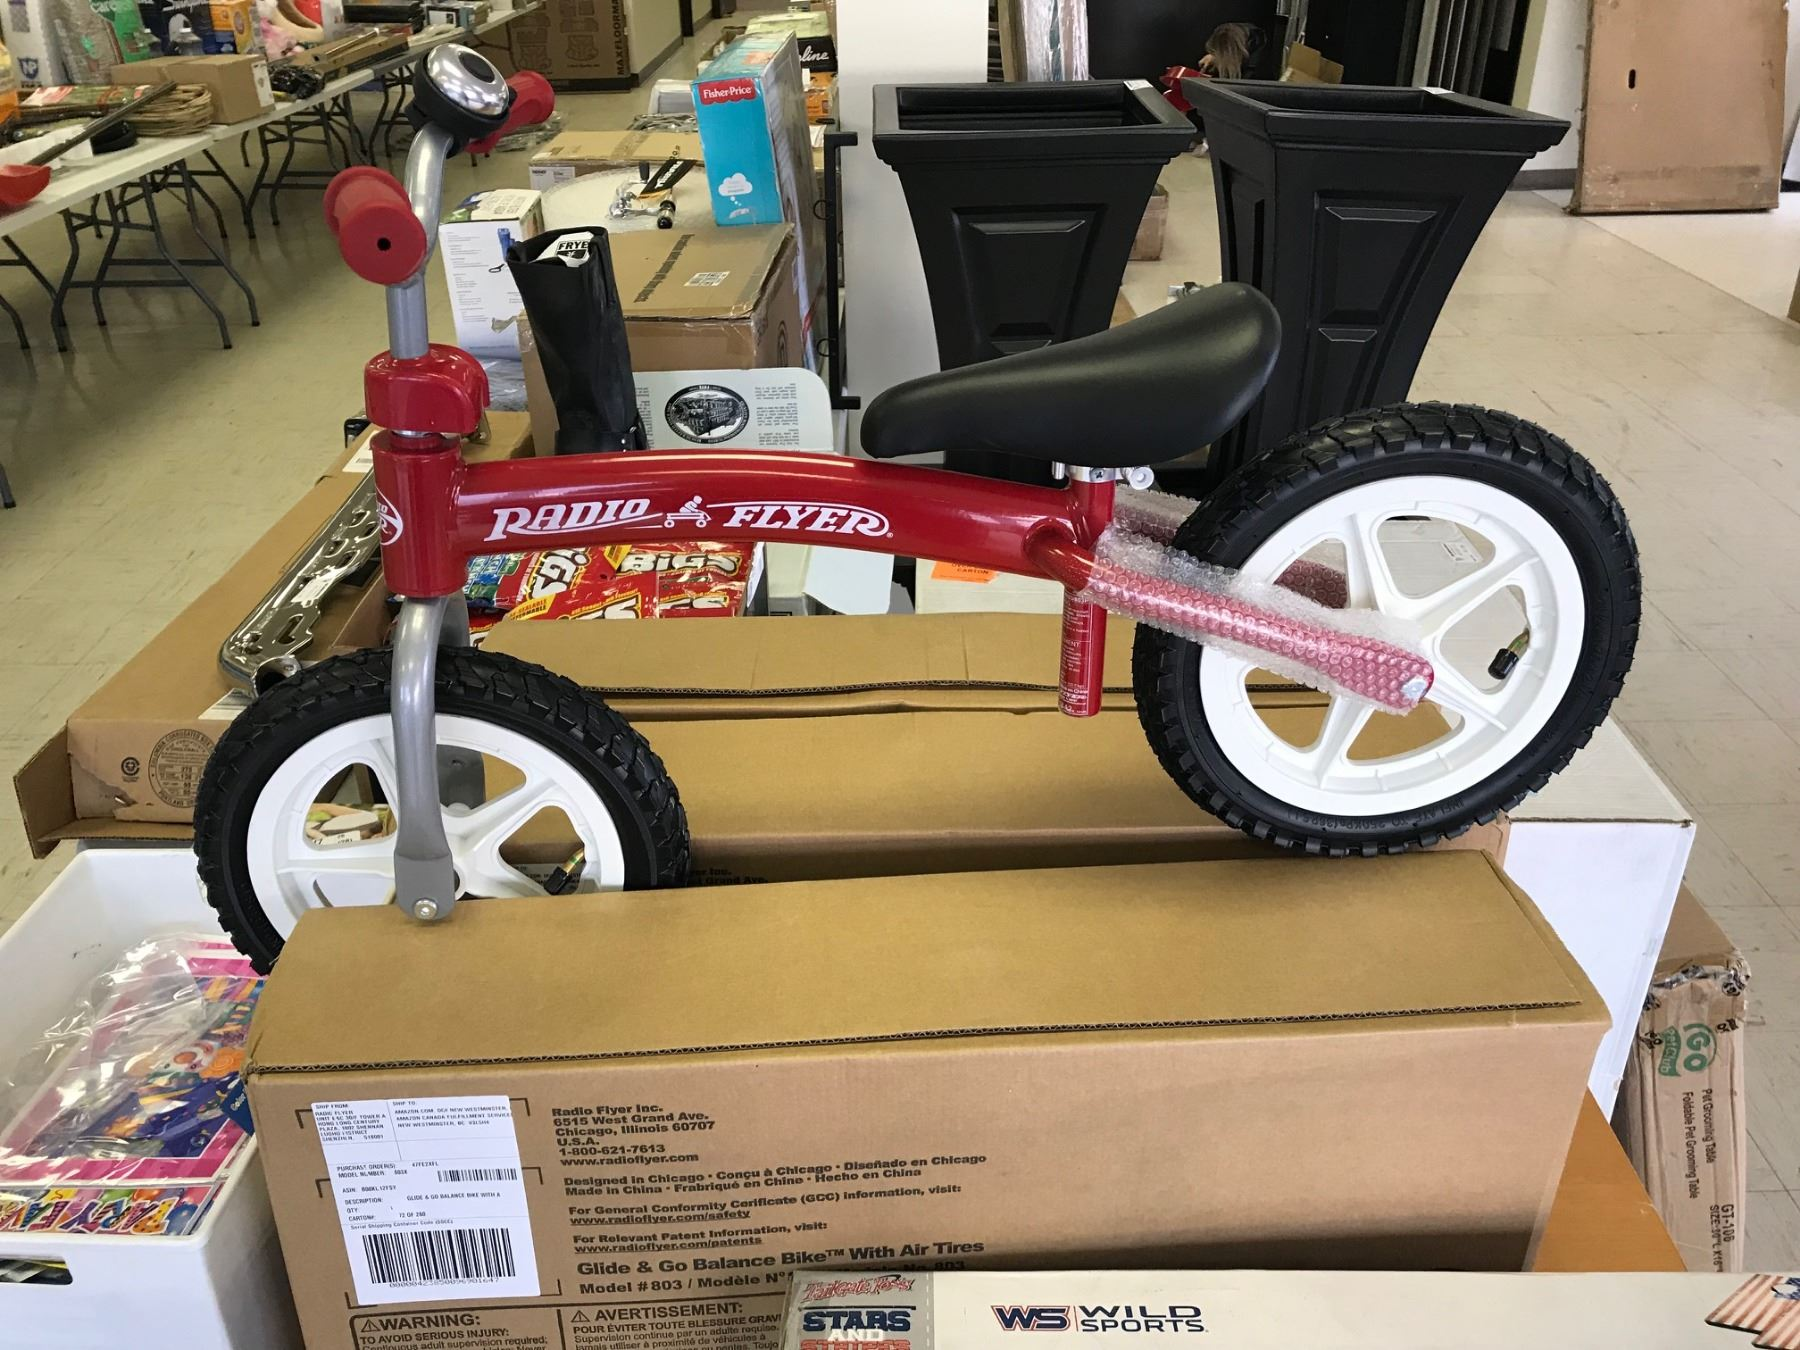 New In Box Radio Flyer Glide N Go Balance Bike With Air Tires